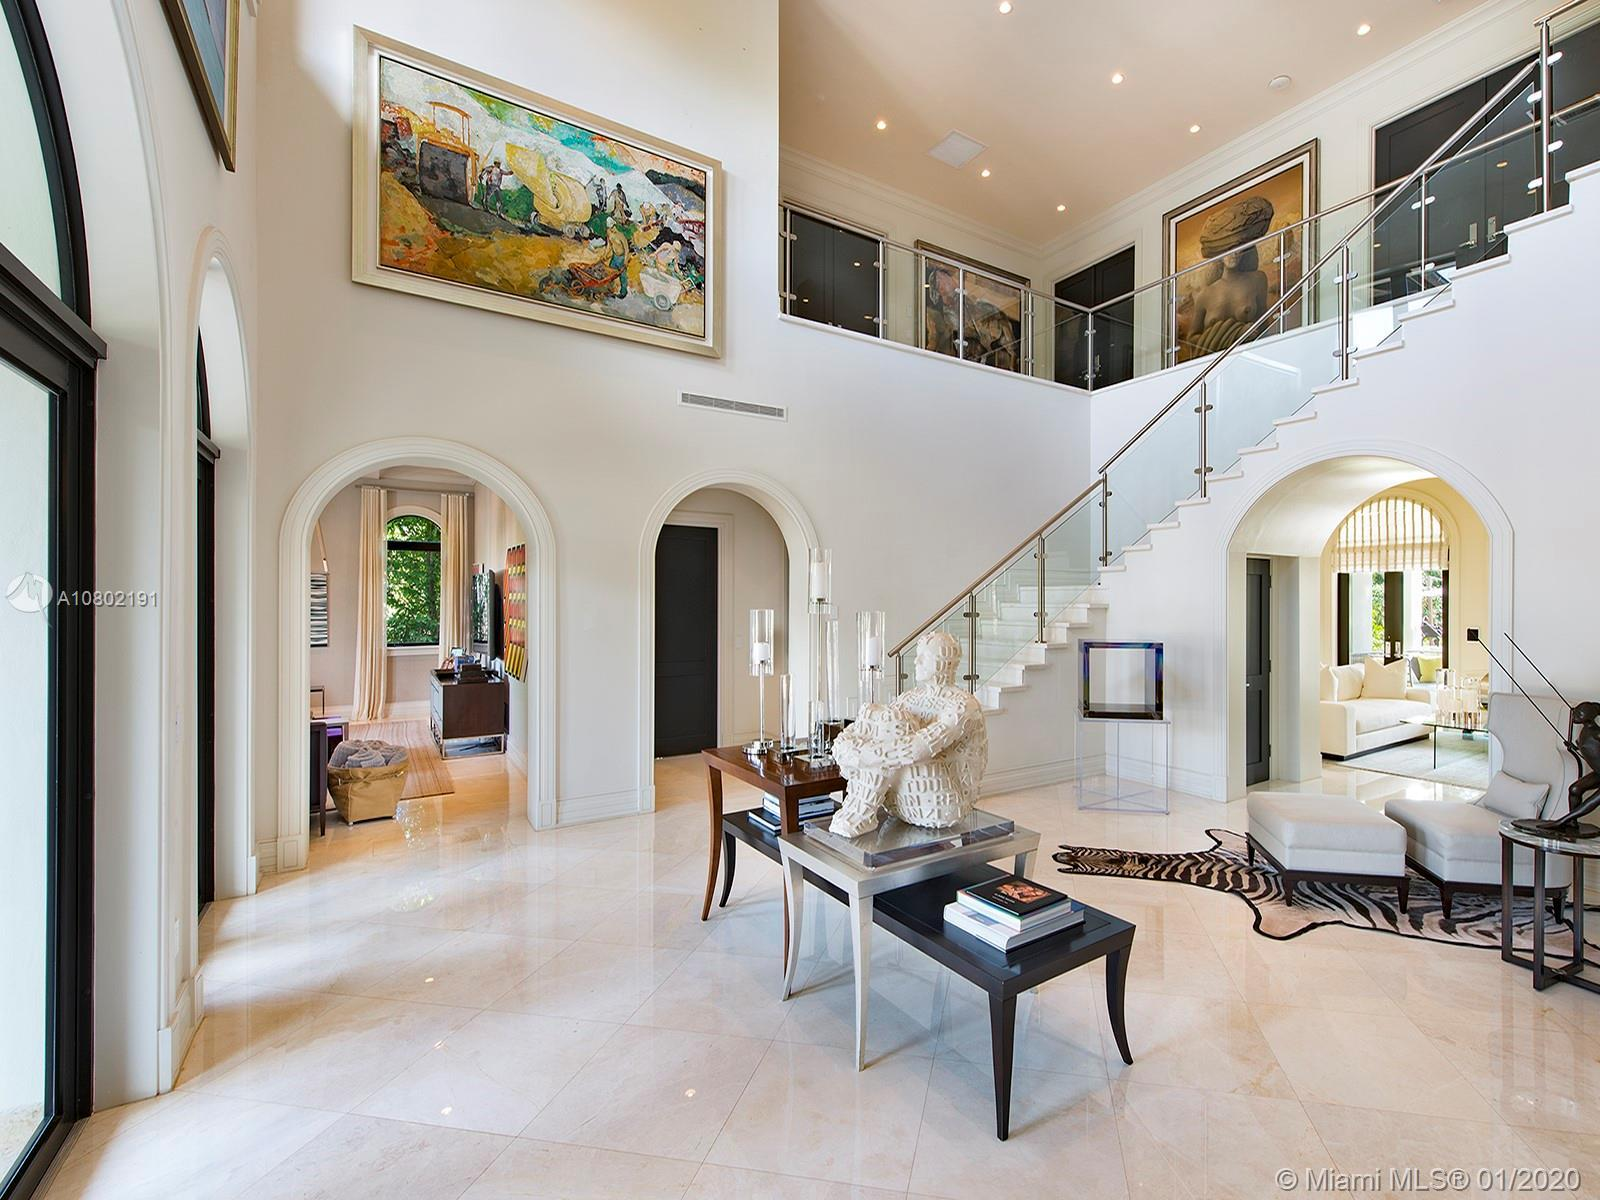 North Pinecrest Italianate Architecture Mansion!  This nearly 8,000 sq ft home has 8 bedrooms, 9.5 b